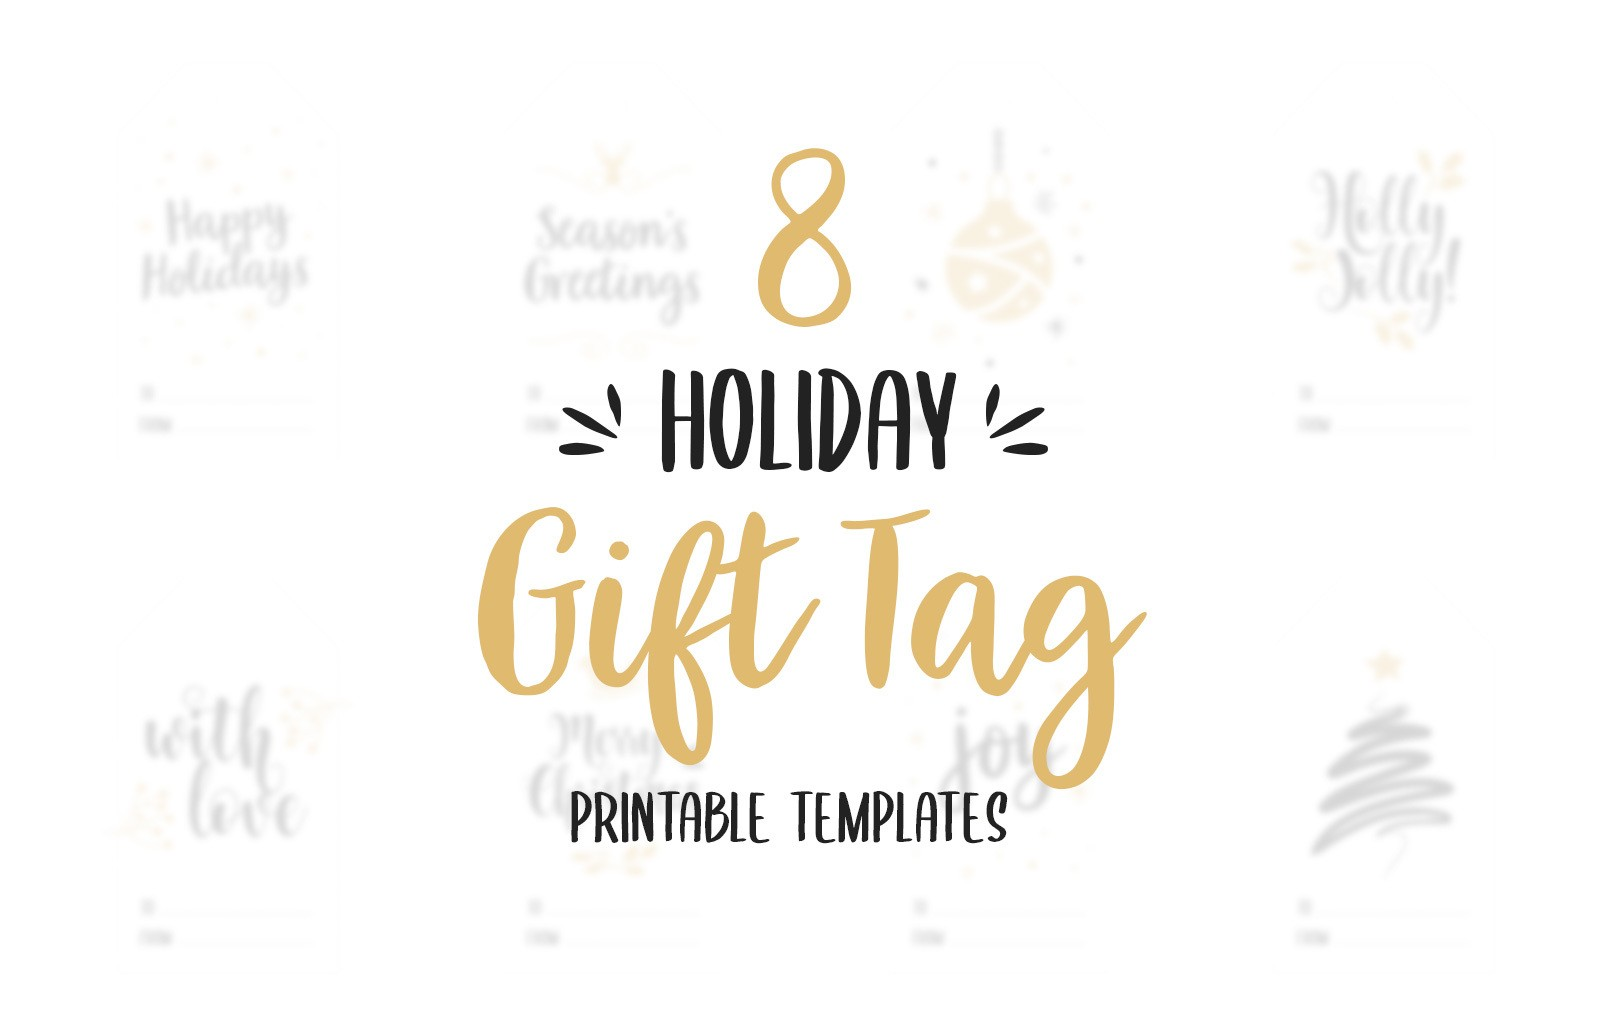 Holiday Gift Tag Templates Preview 1A